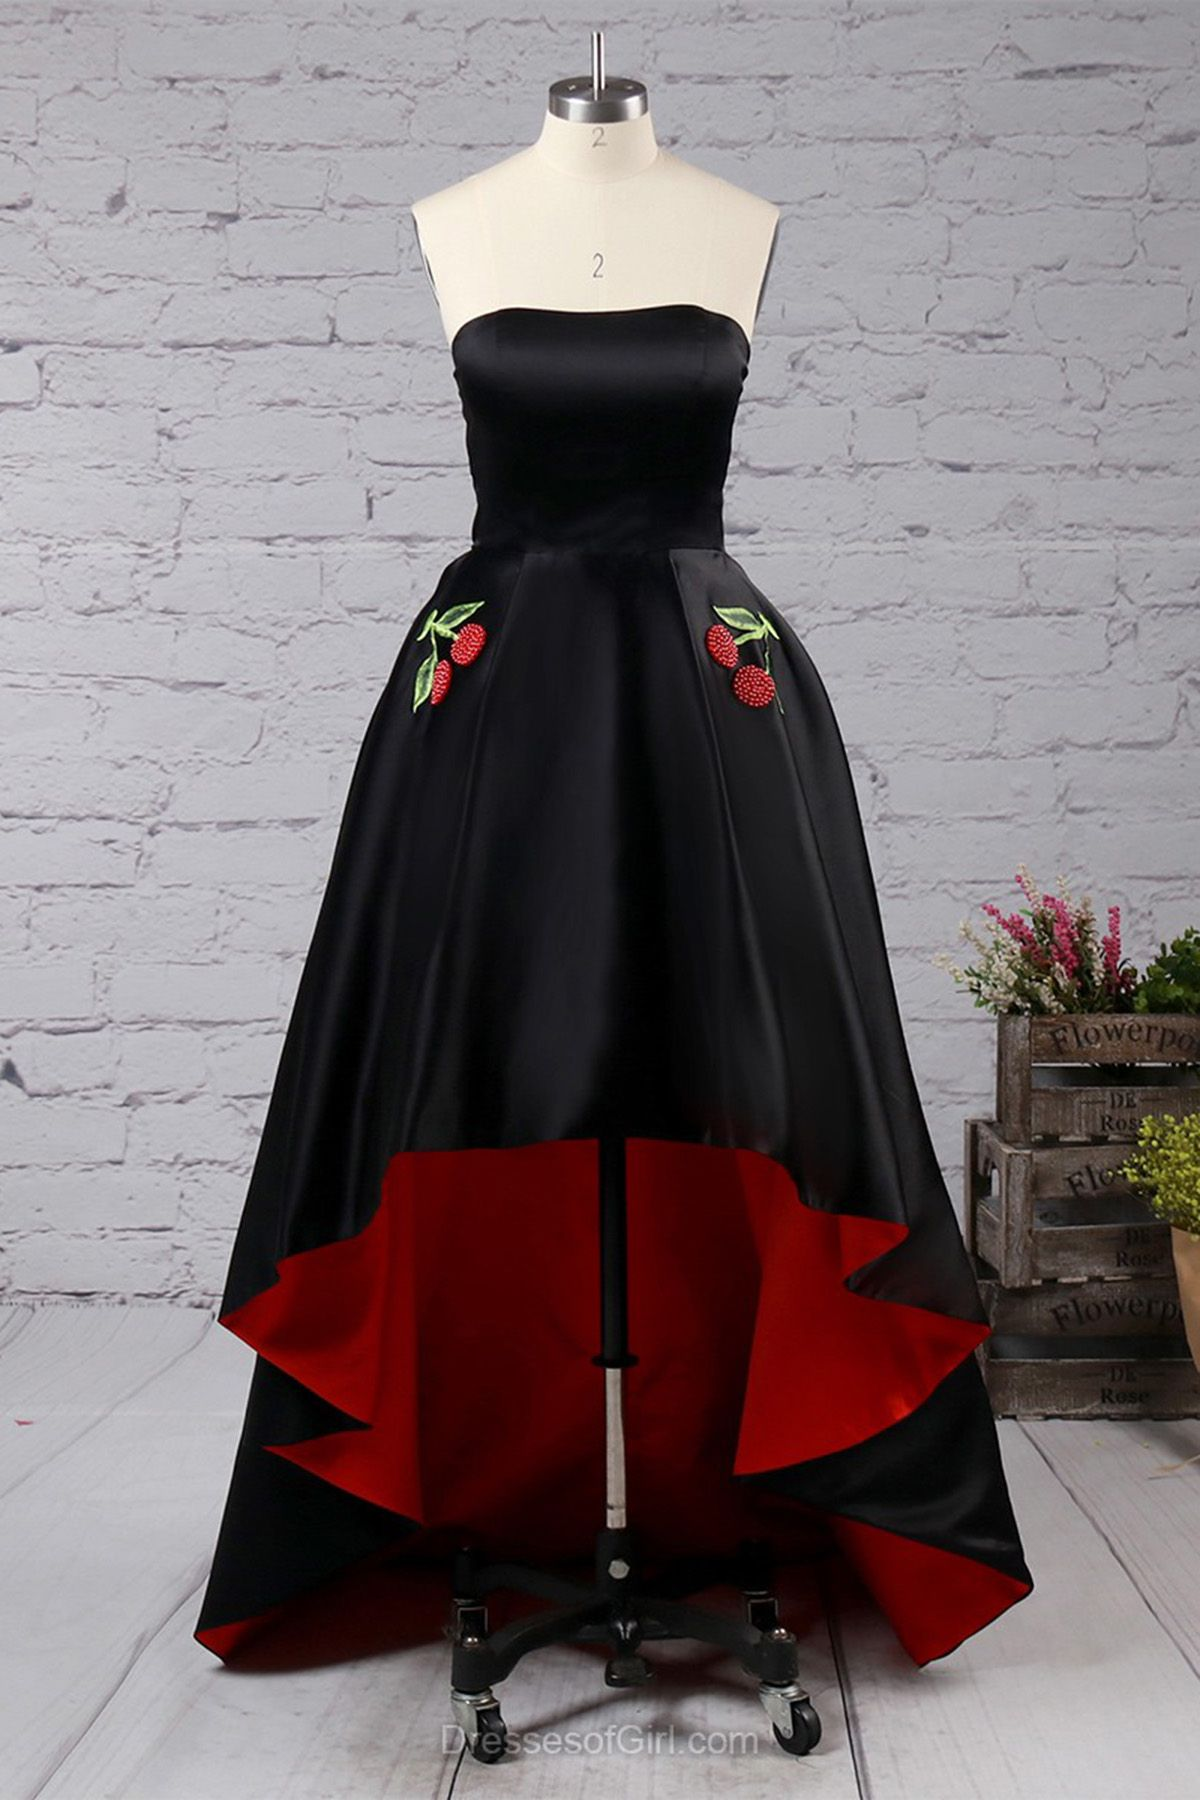 Black satin high low aline prom dress homecoming dress from